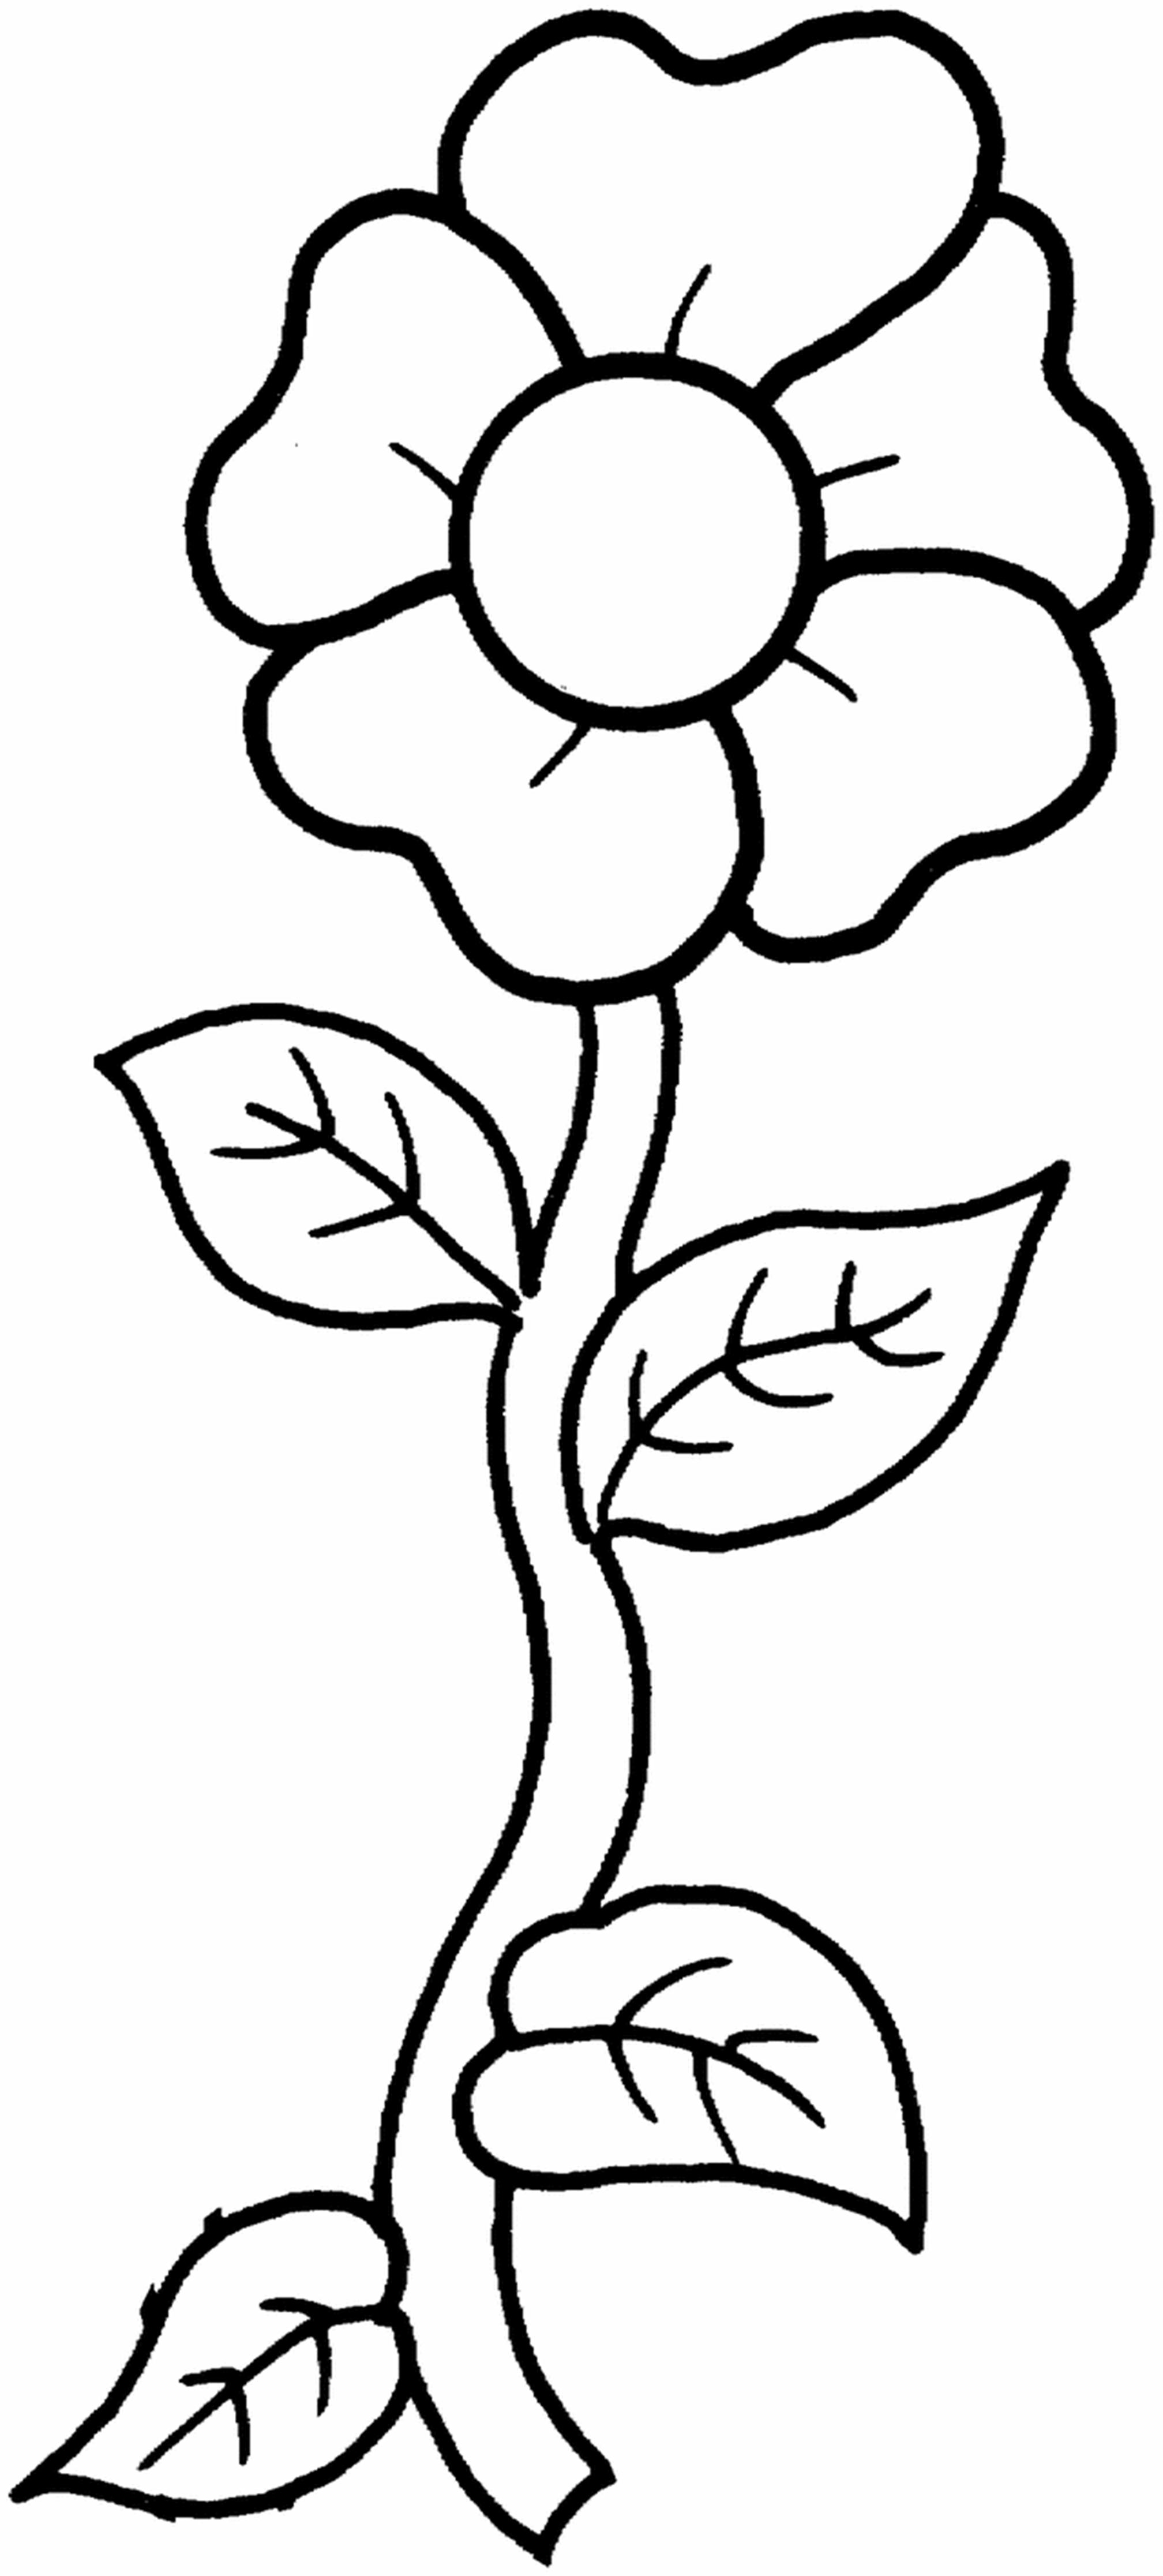 coloring outline pictures free printable flower coloring pages for kids best pictures coloring outline